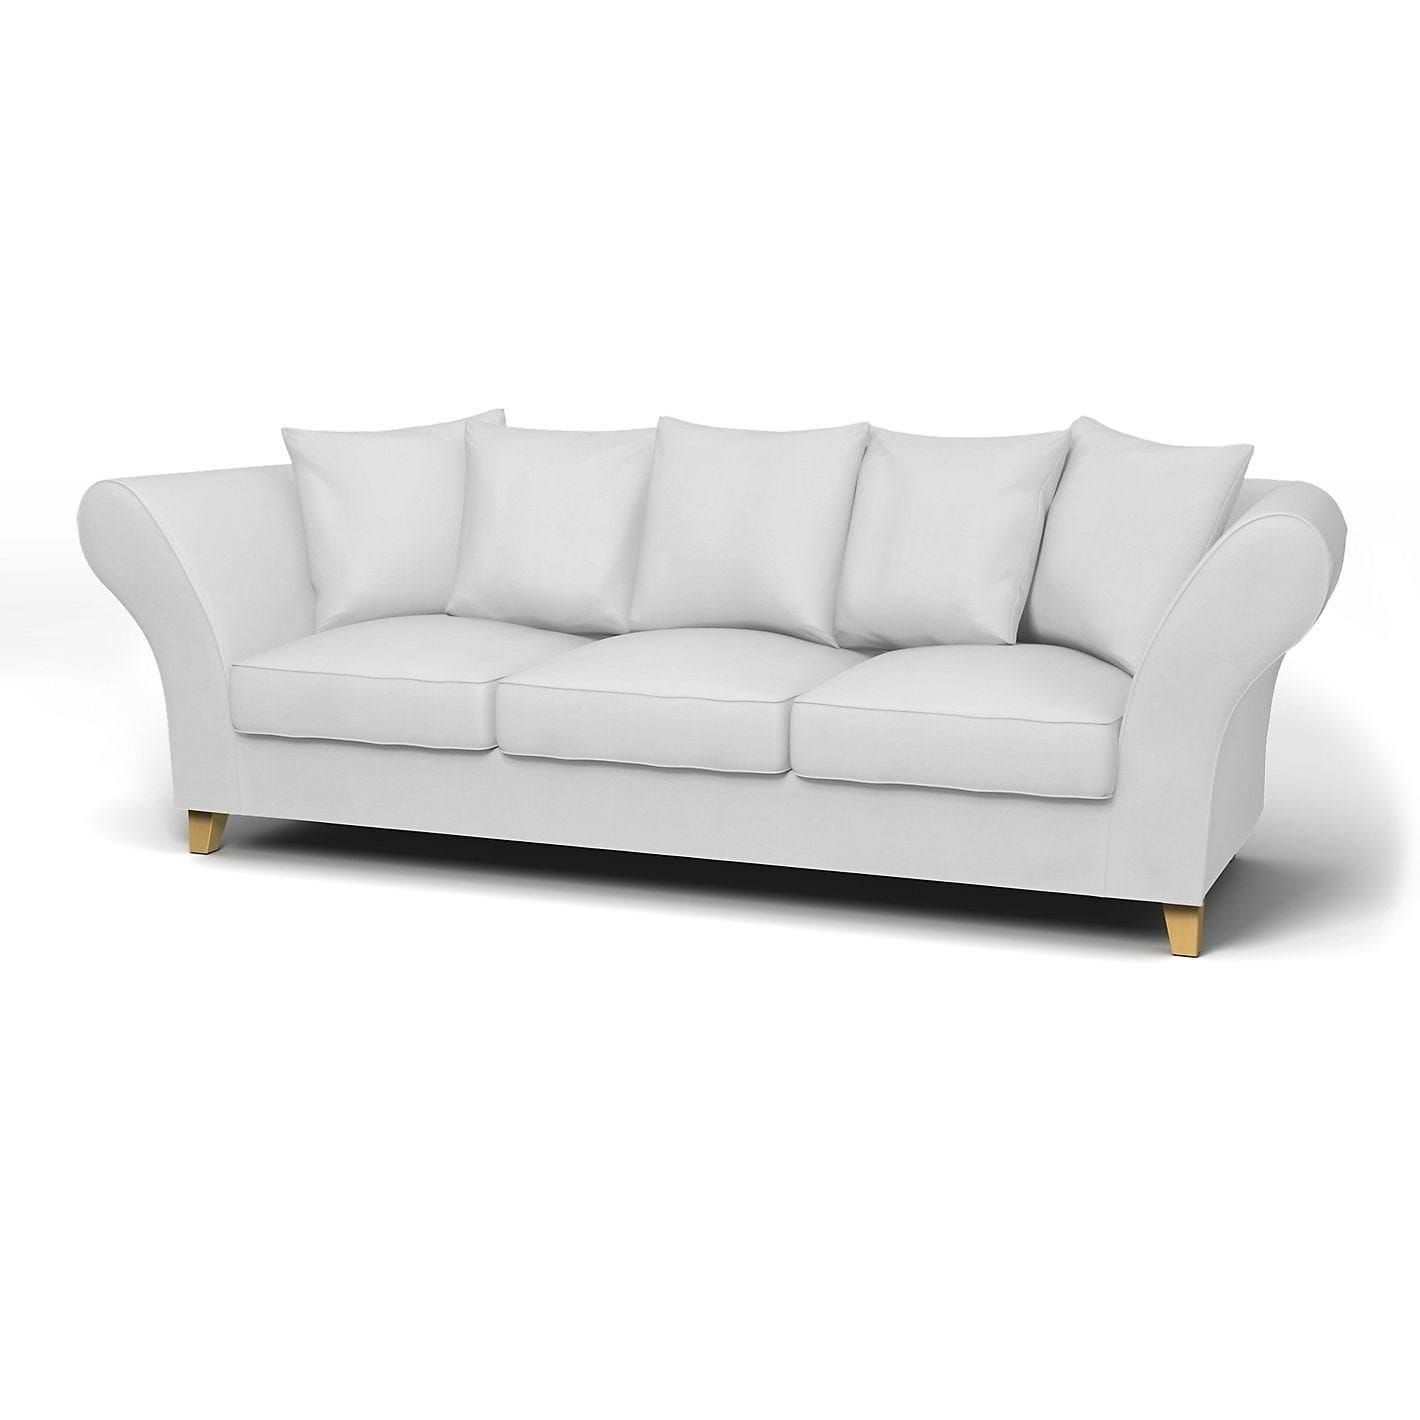 Shop Extra Or Replacement Discontinued Ikea Backa Sofa Covers Couch Covers In A Wide Selection Of Designer Fabrics Don T 5 Seater Sofa Seater Sofa Sofa Covers